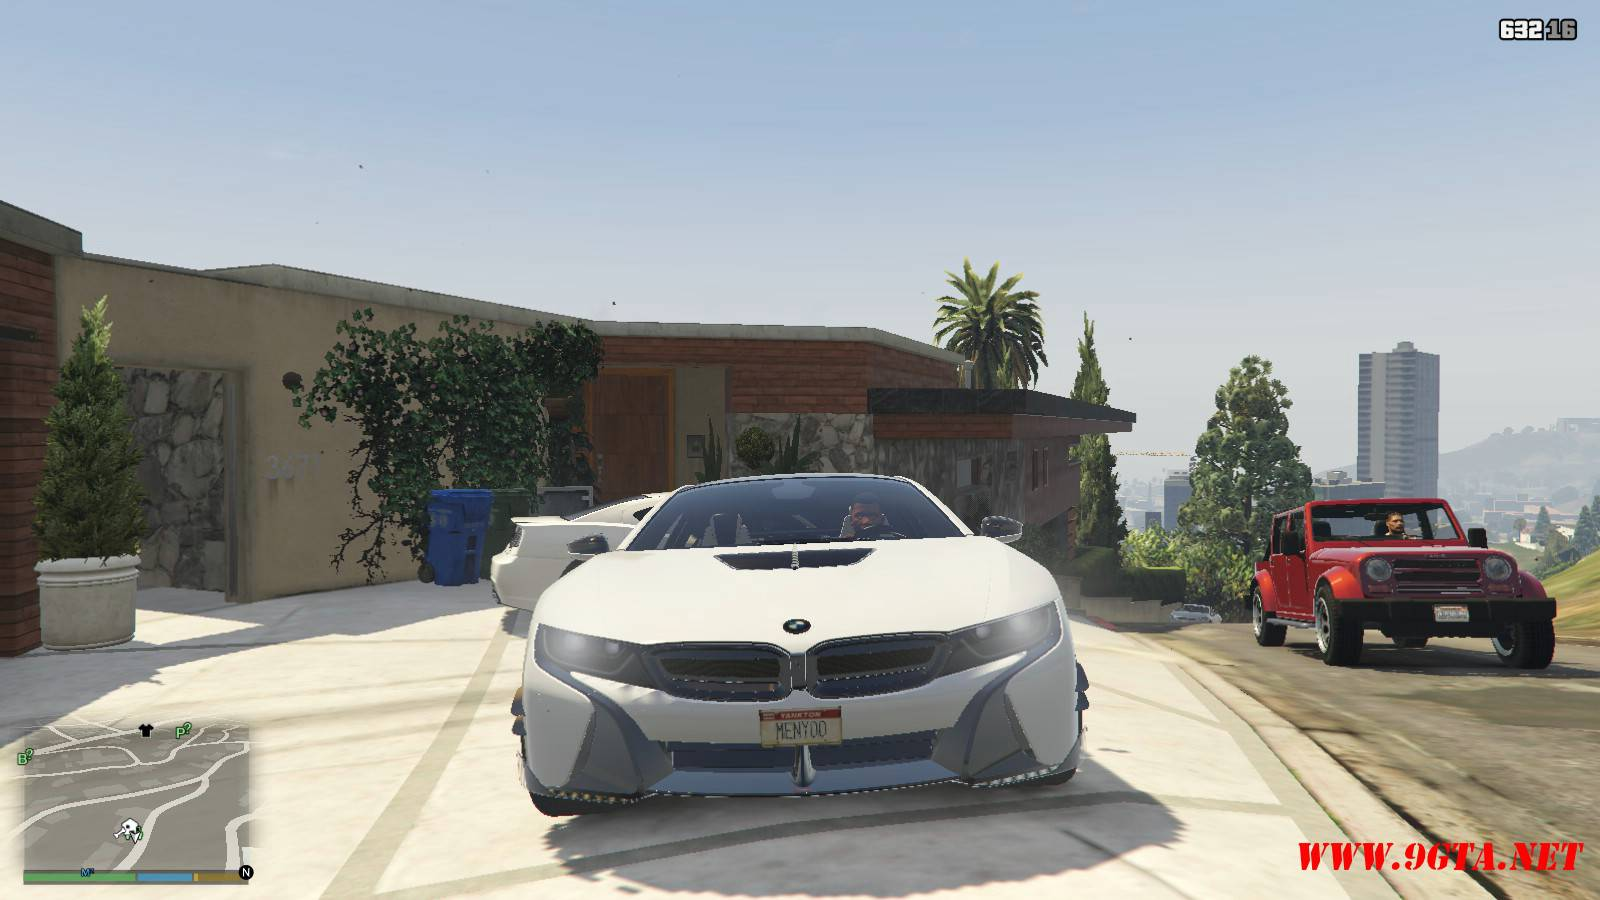 BMW i8 AC Schinitzer ACS8 Mod For GTA5 (10)